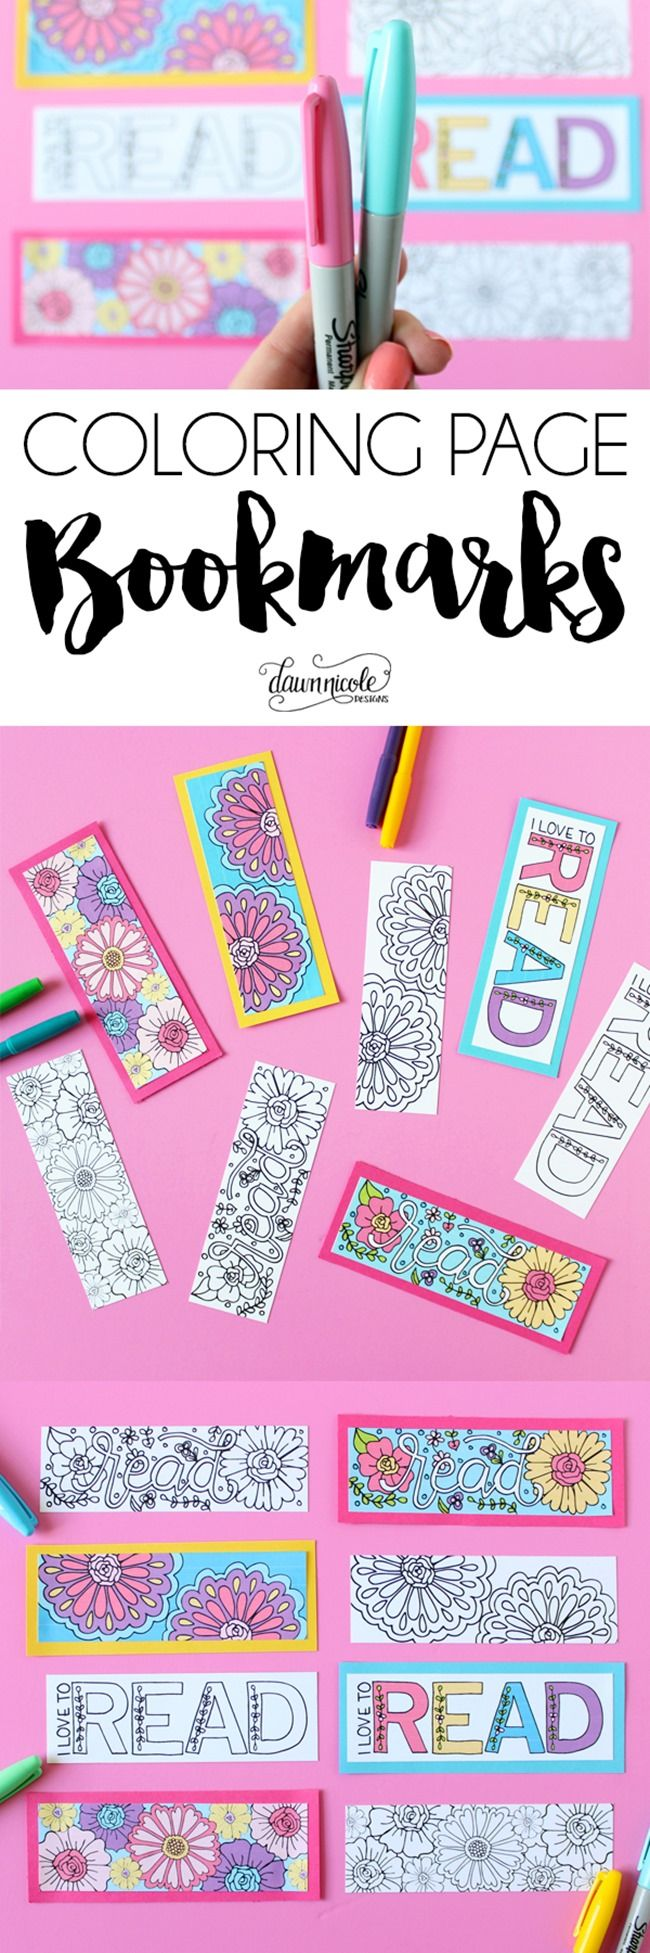 Bookmarks to color adults - 12 Free Printable Adult Coloring Pages For Summer